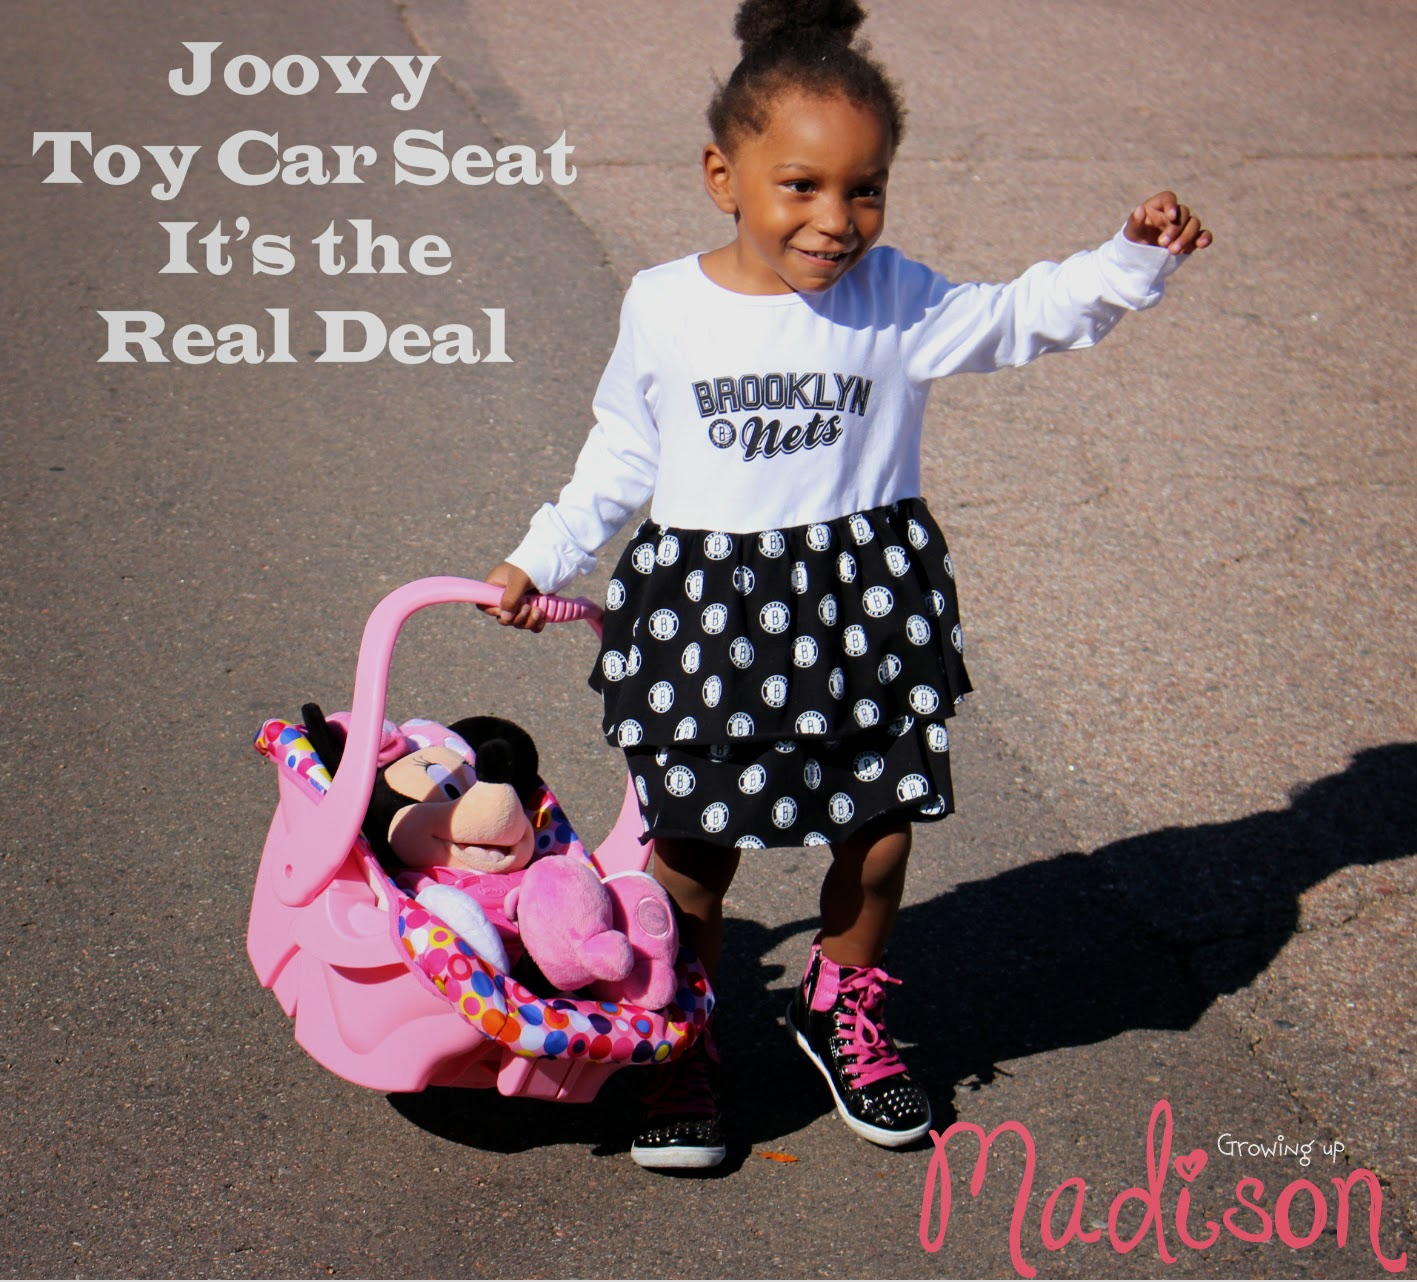 I Received The Joovy Toy Car Seat For My Dolls And Couldnt Have Been More Delighted If Youre Wondering It Is Also Available In Blue So Little Boys Can